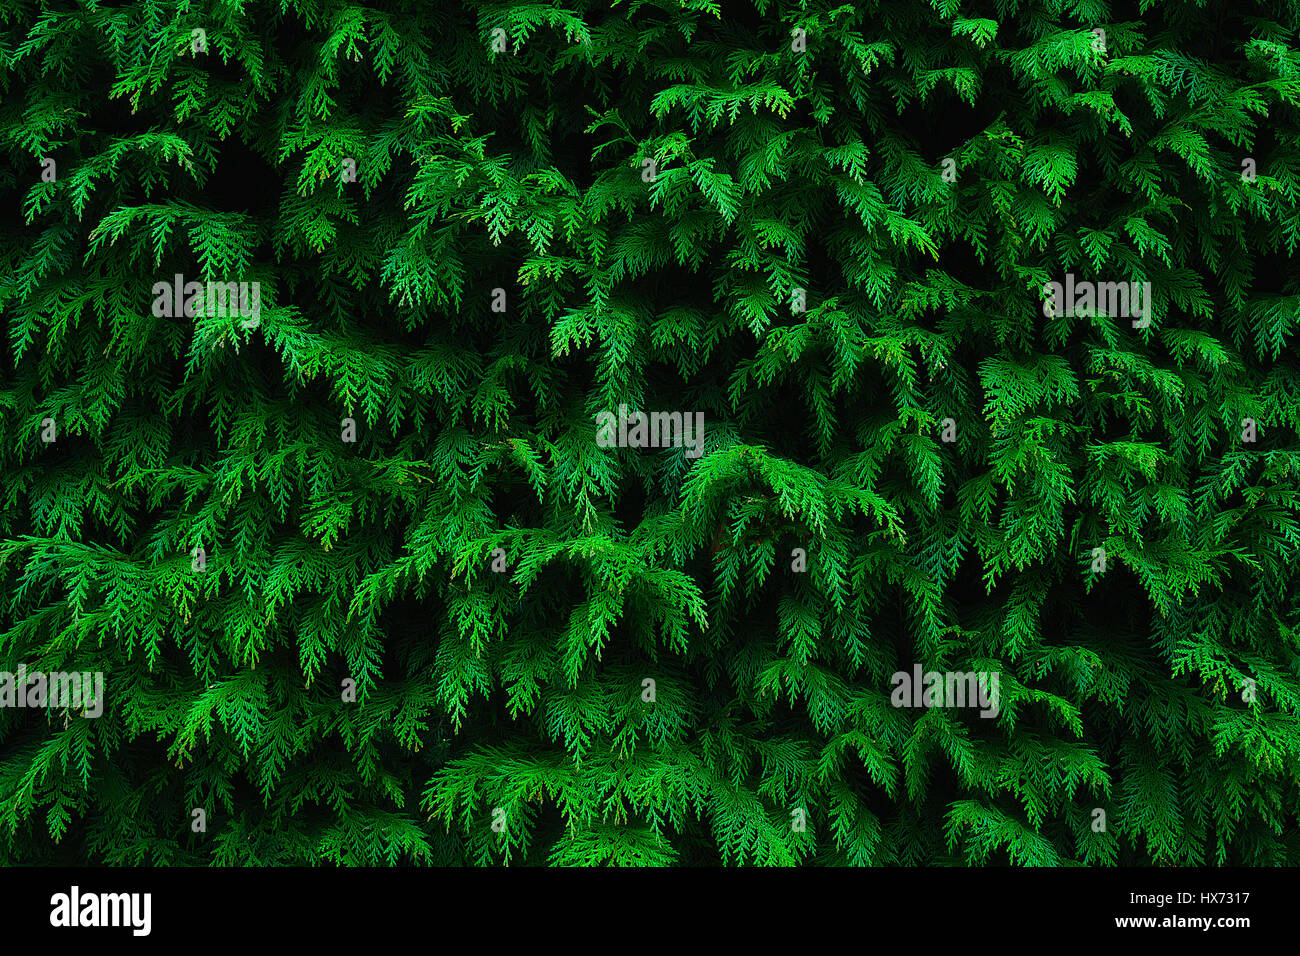 background of conifer leaf texture pattern - Stock Image